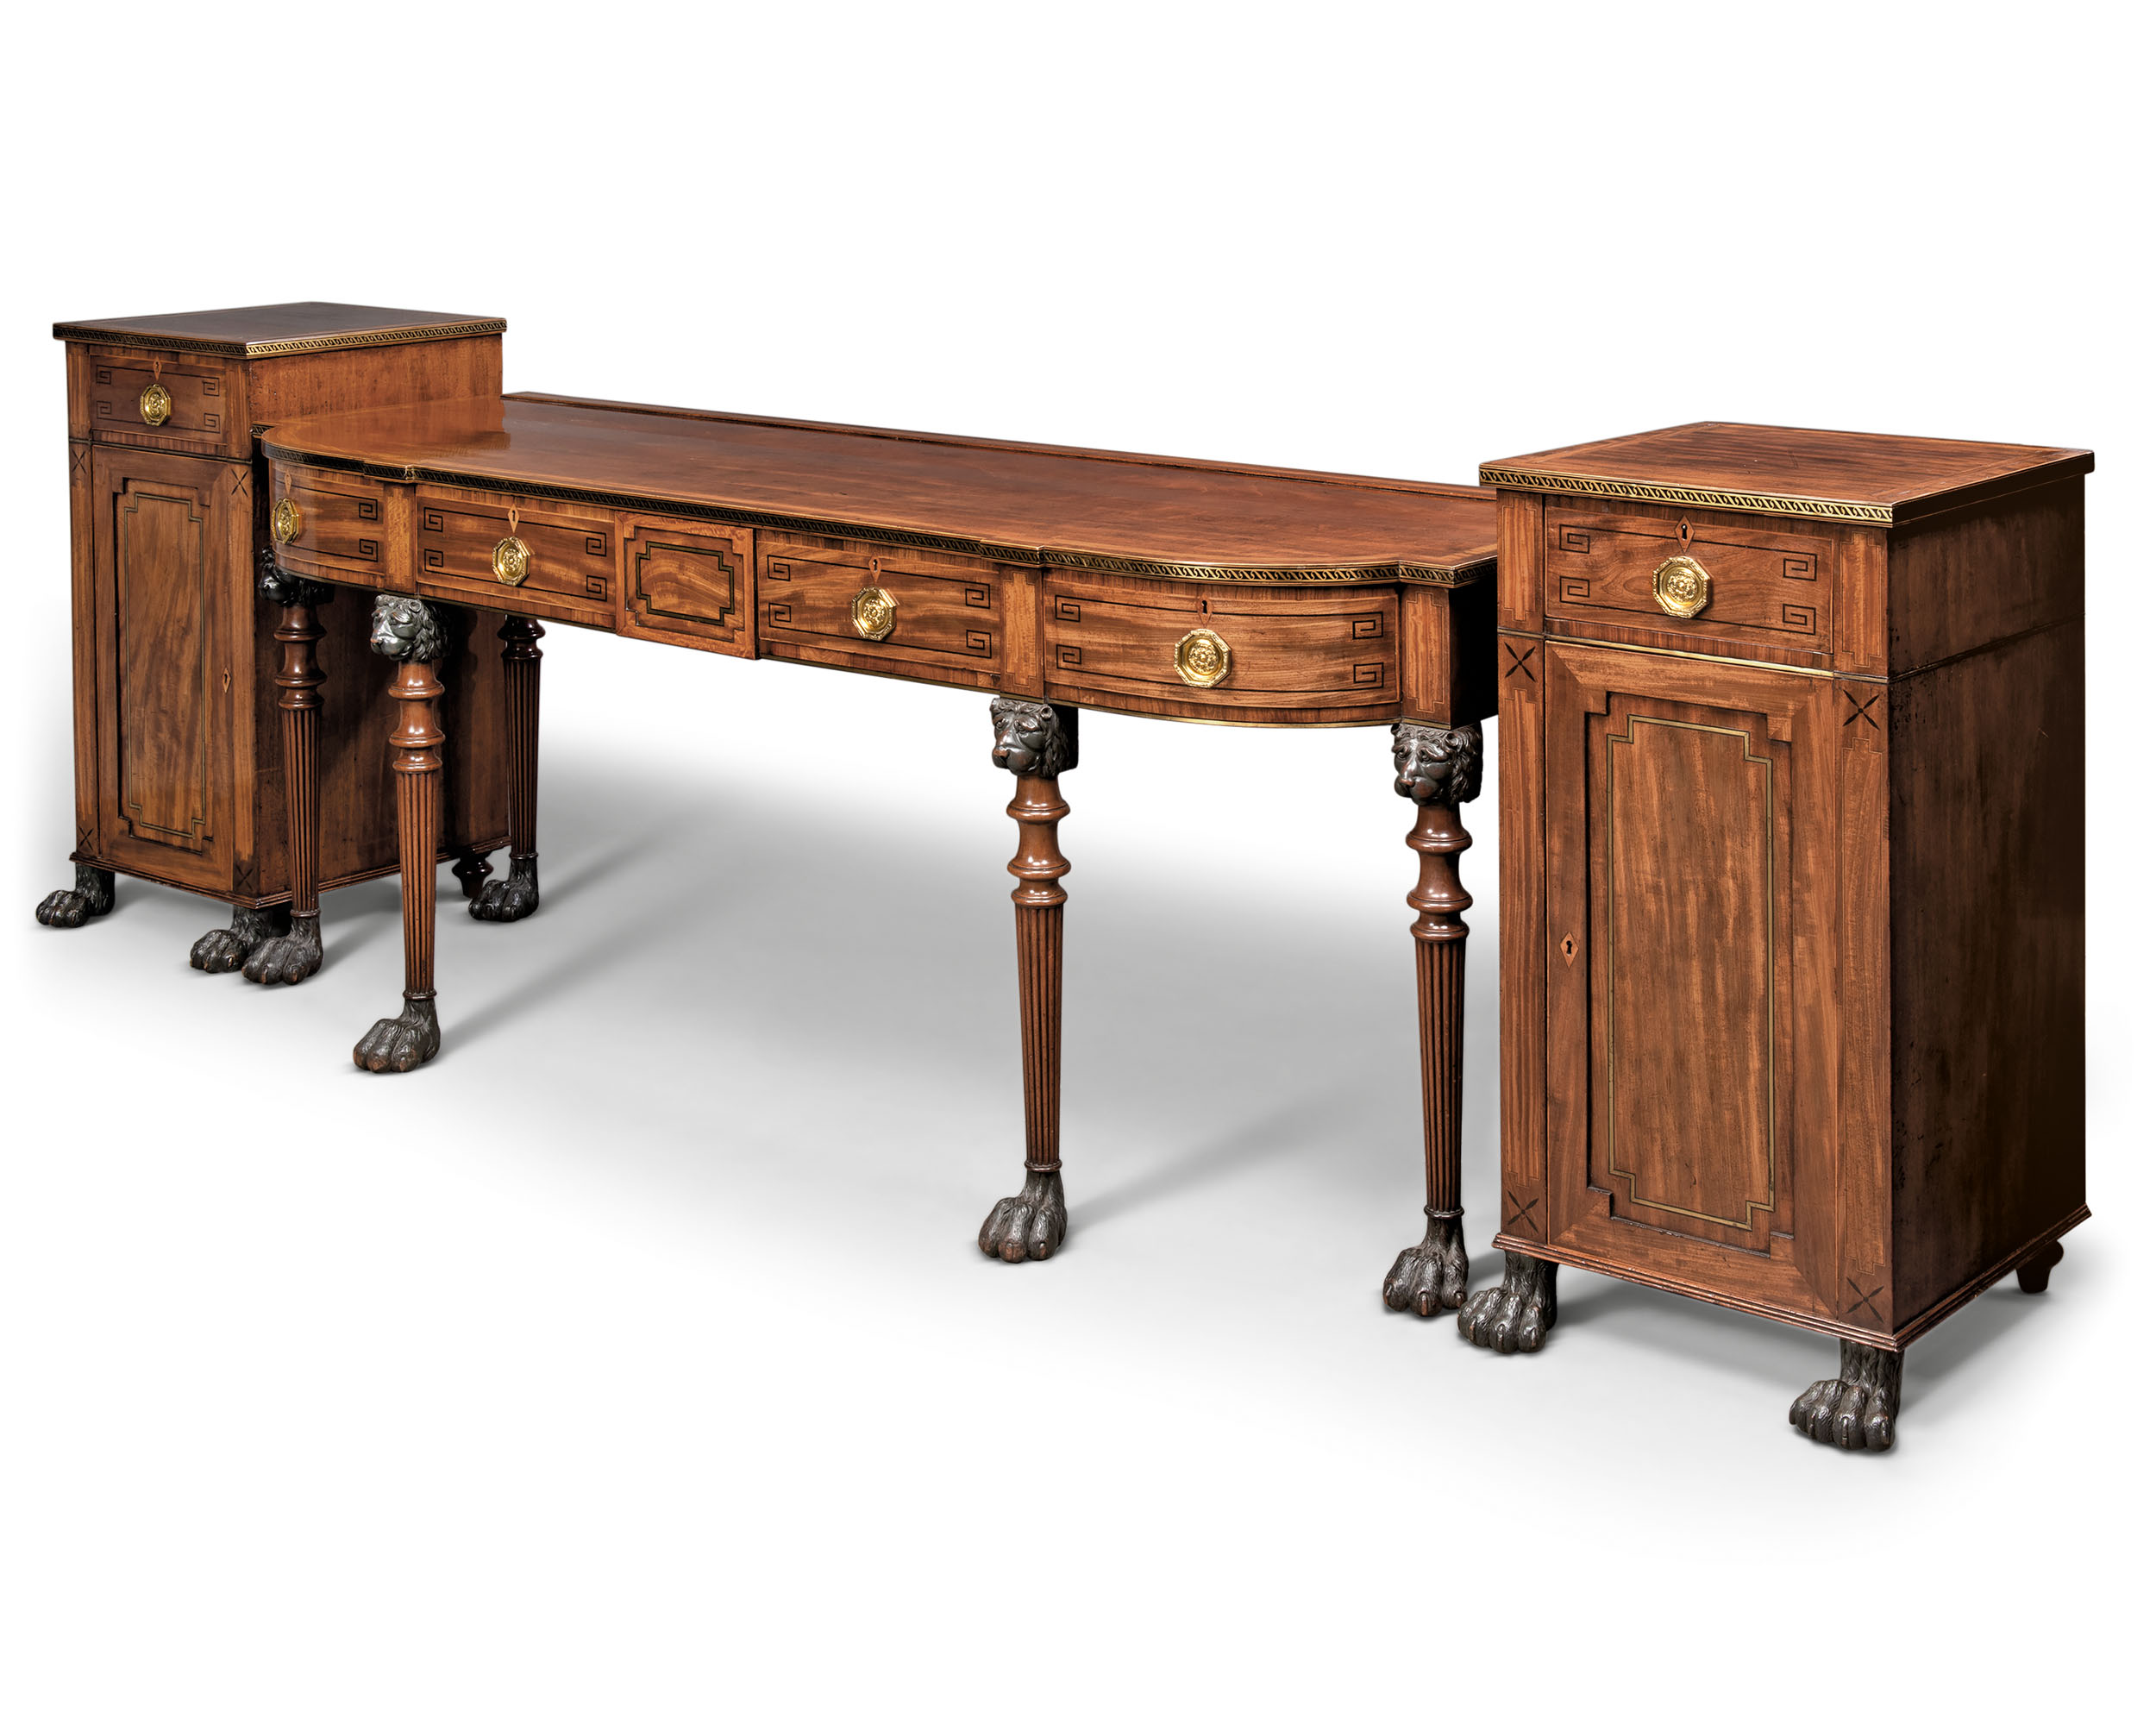 A REGENCY BRASS-INLAID MAHOGANY, EBONY, EBONISED AND SATINWOOD-CROSSBANDED SERVING-TABLE AND PAIR OF PEDESTALS